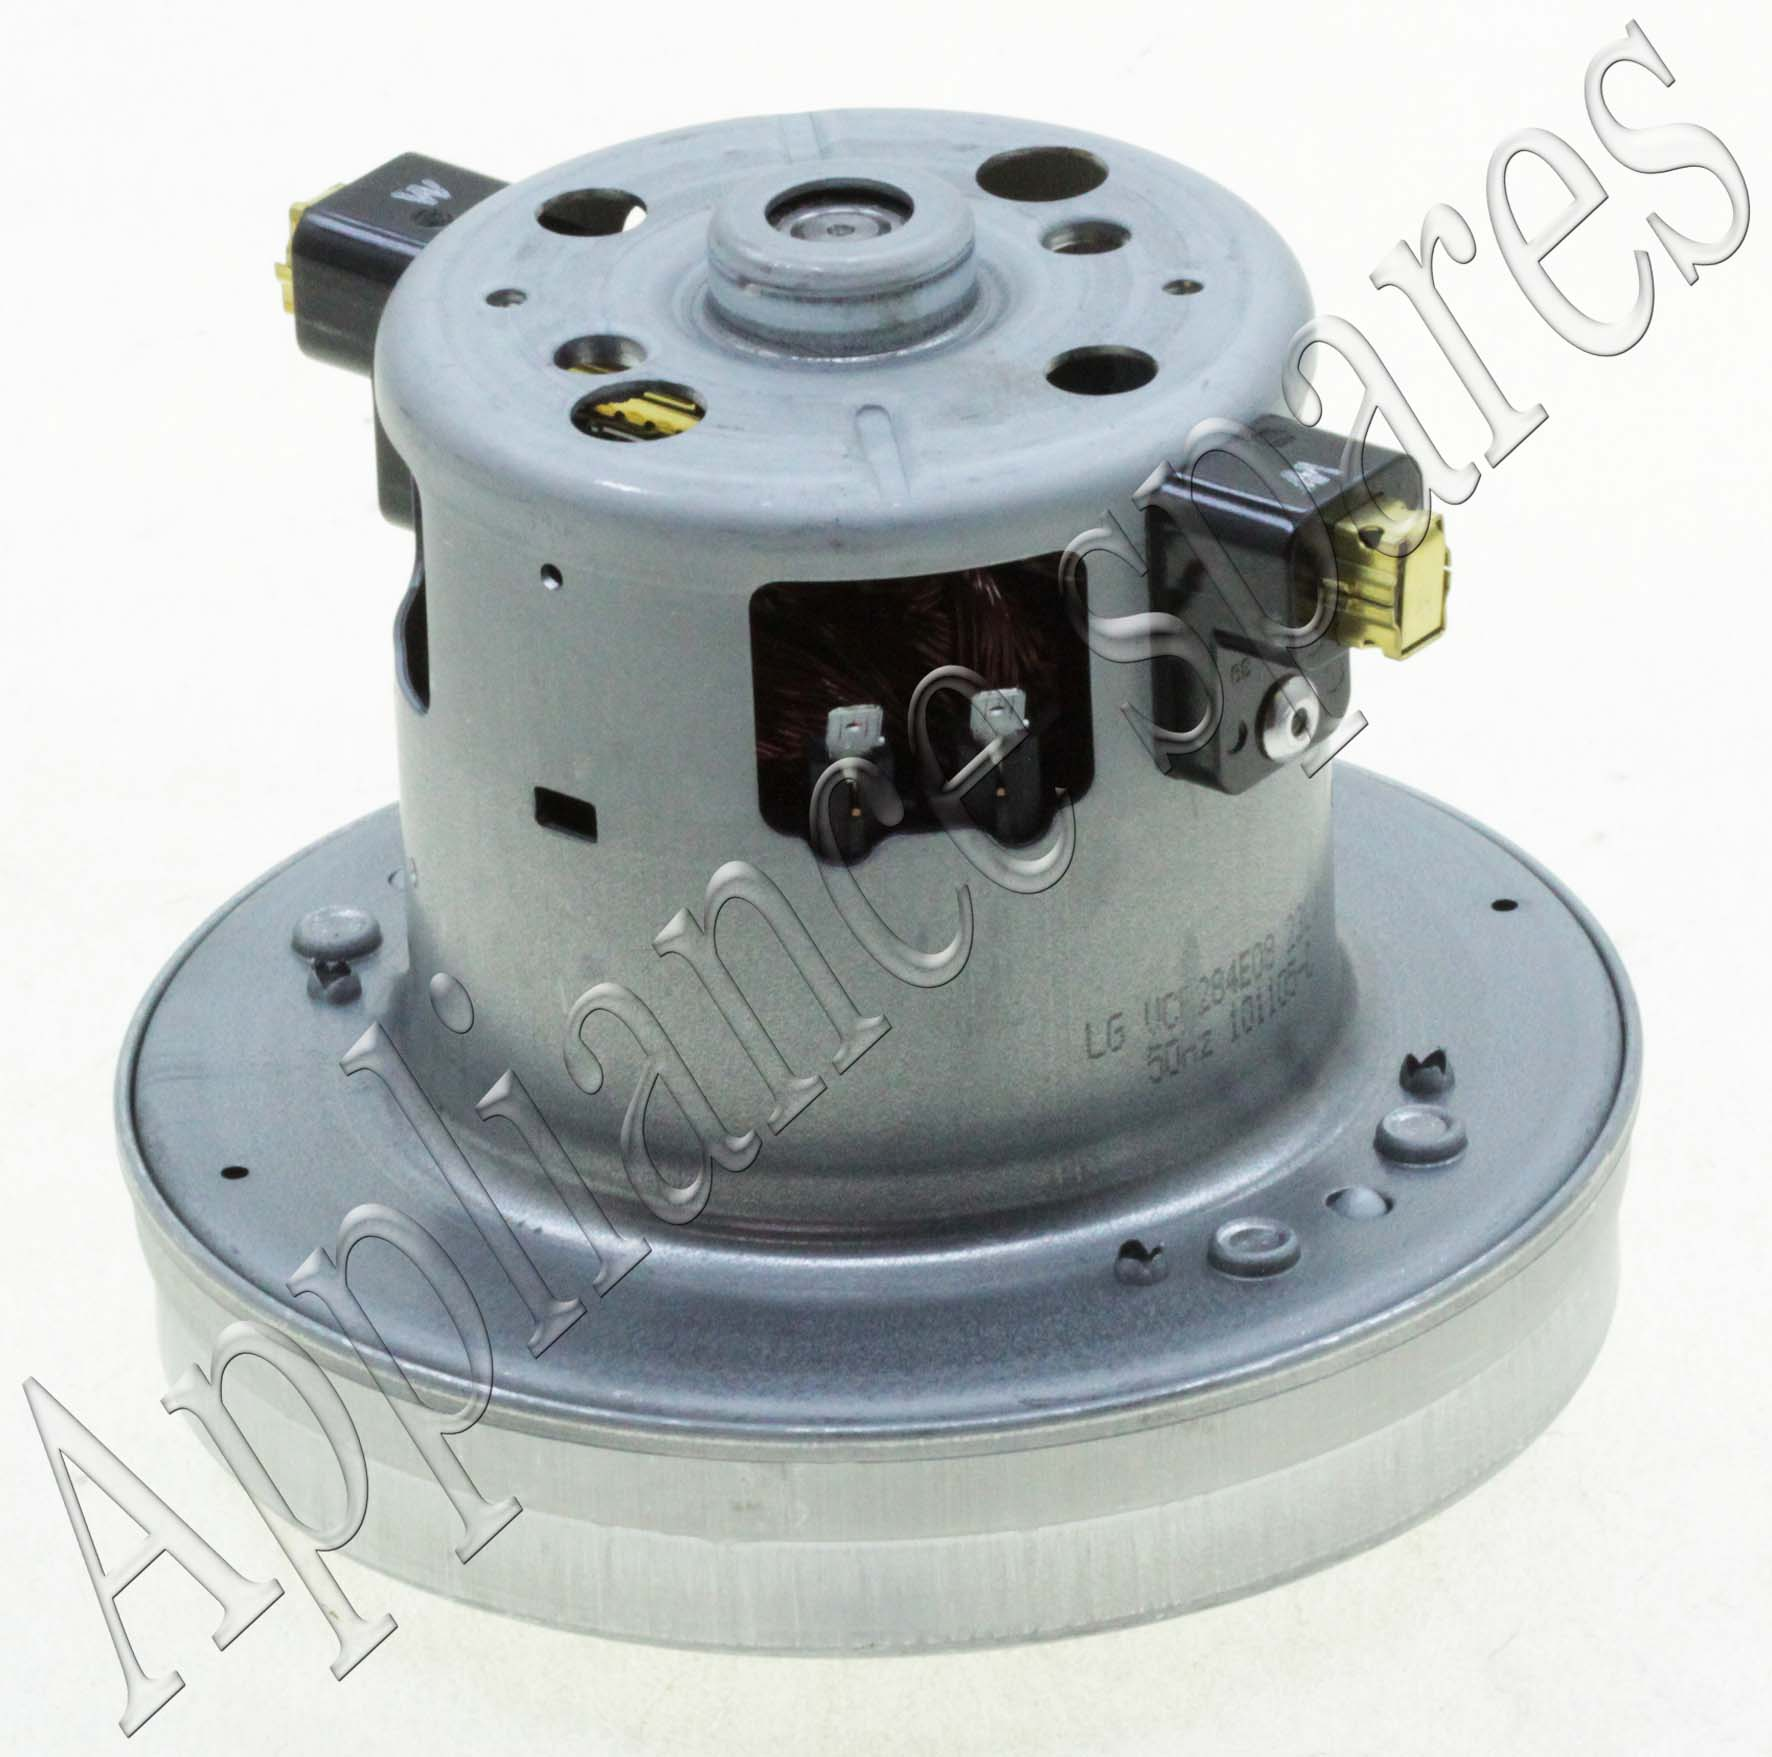 Lg vacuum cleaner motor ac lategan and van biljoens Vaccum motors